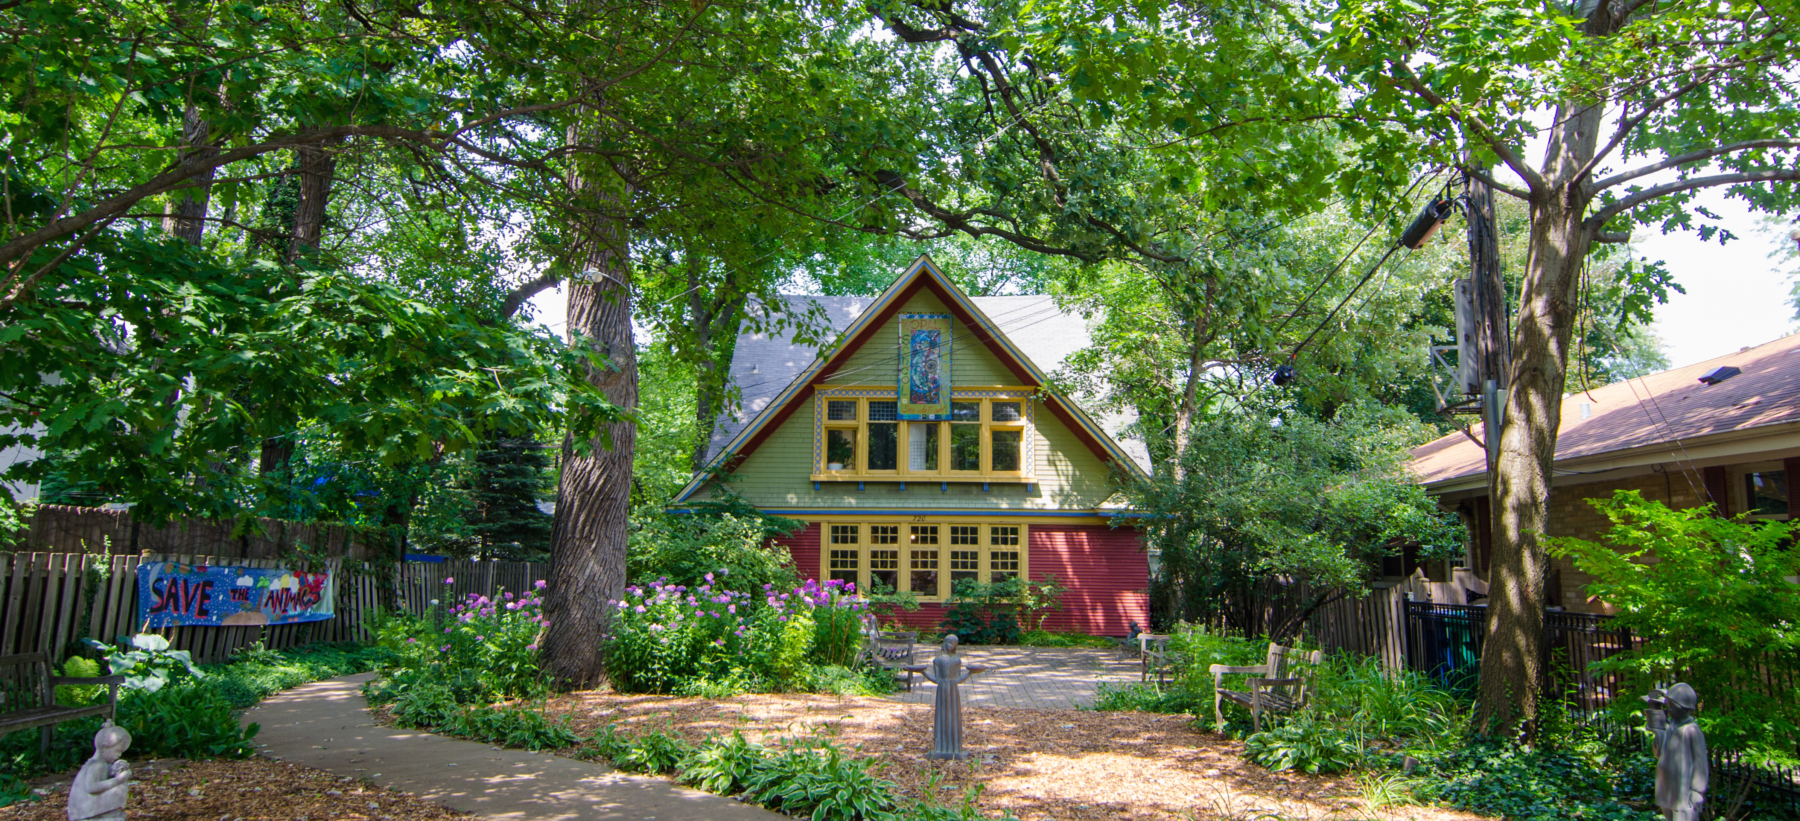 Explore neighborhood architecture outdoors and online during Open House Chicago